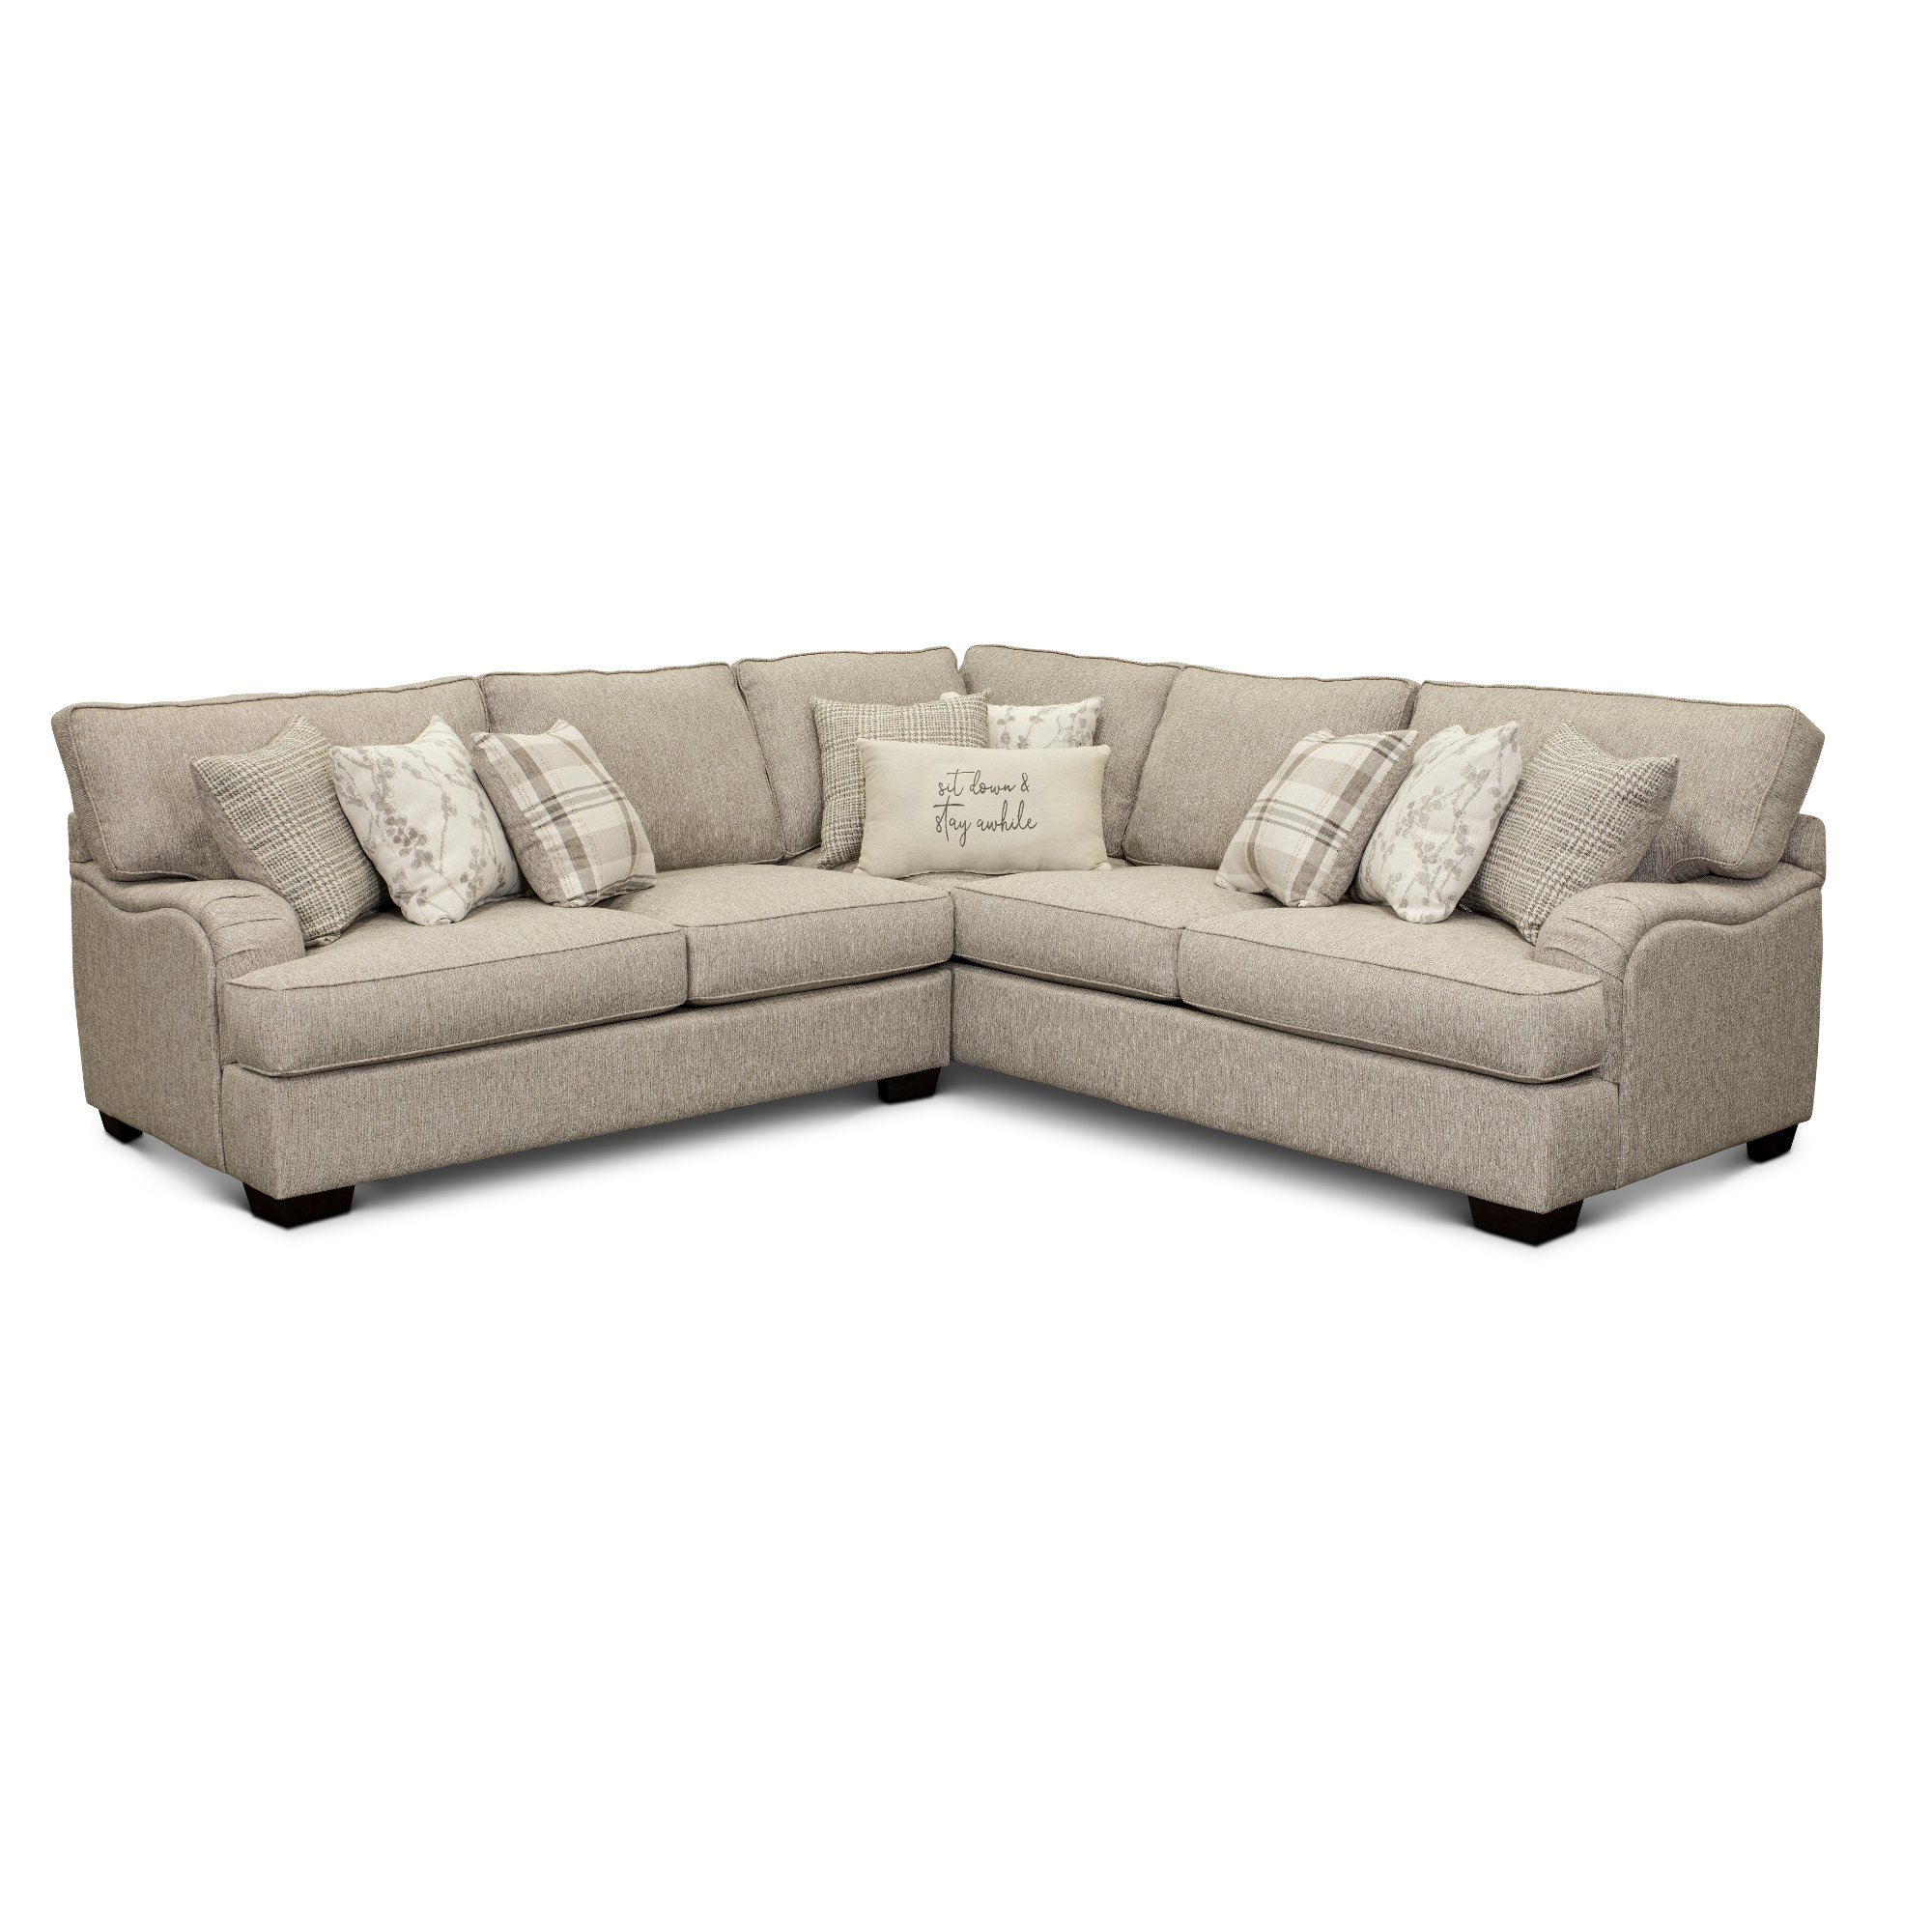 Beige 2 Piece Sectional Sofa With Laf